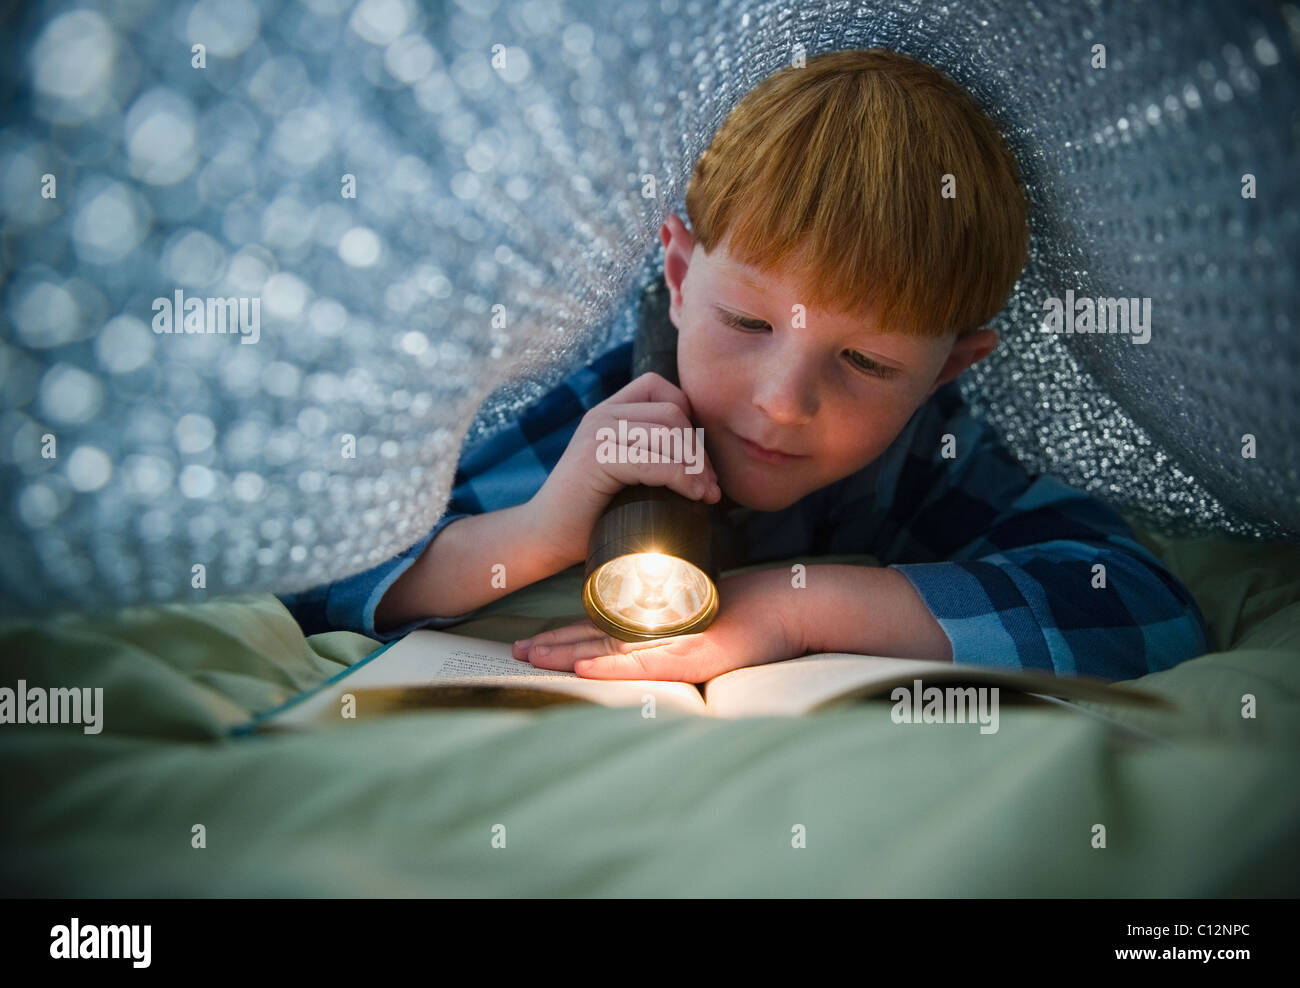 USA, New Jersey, Jersey City, Boy (8-9) reading book under bed covers - Stock Image